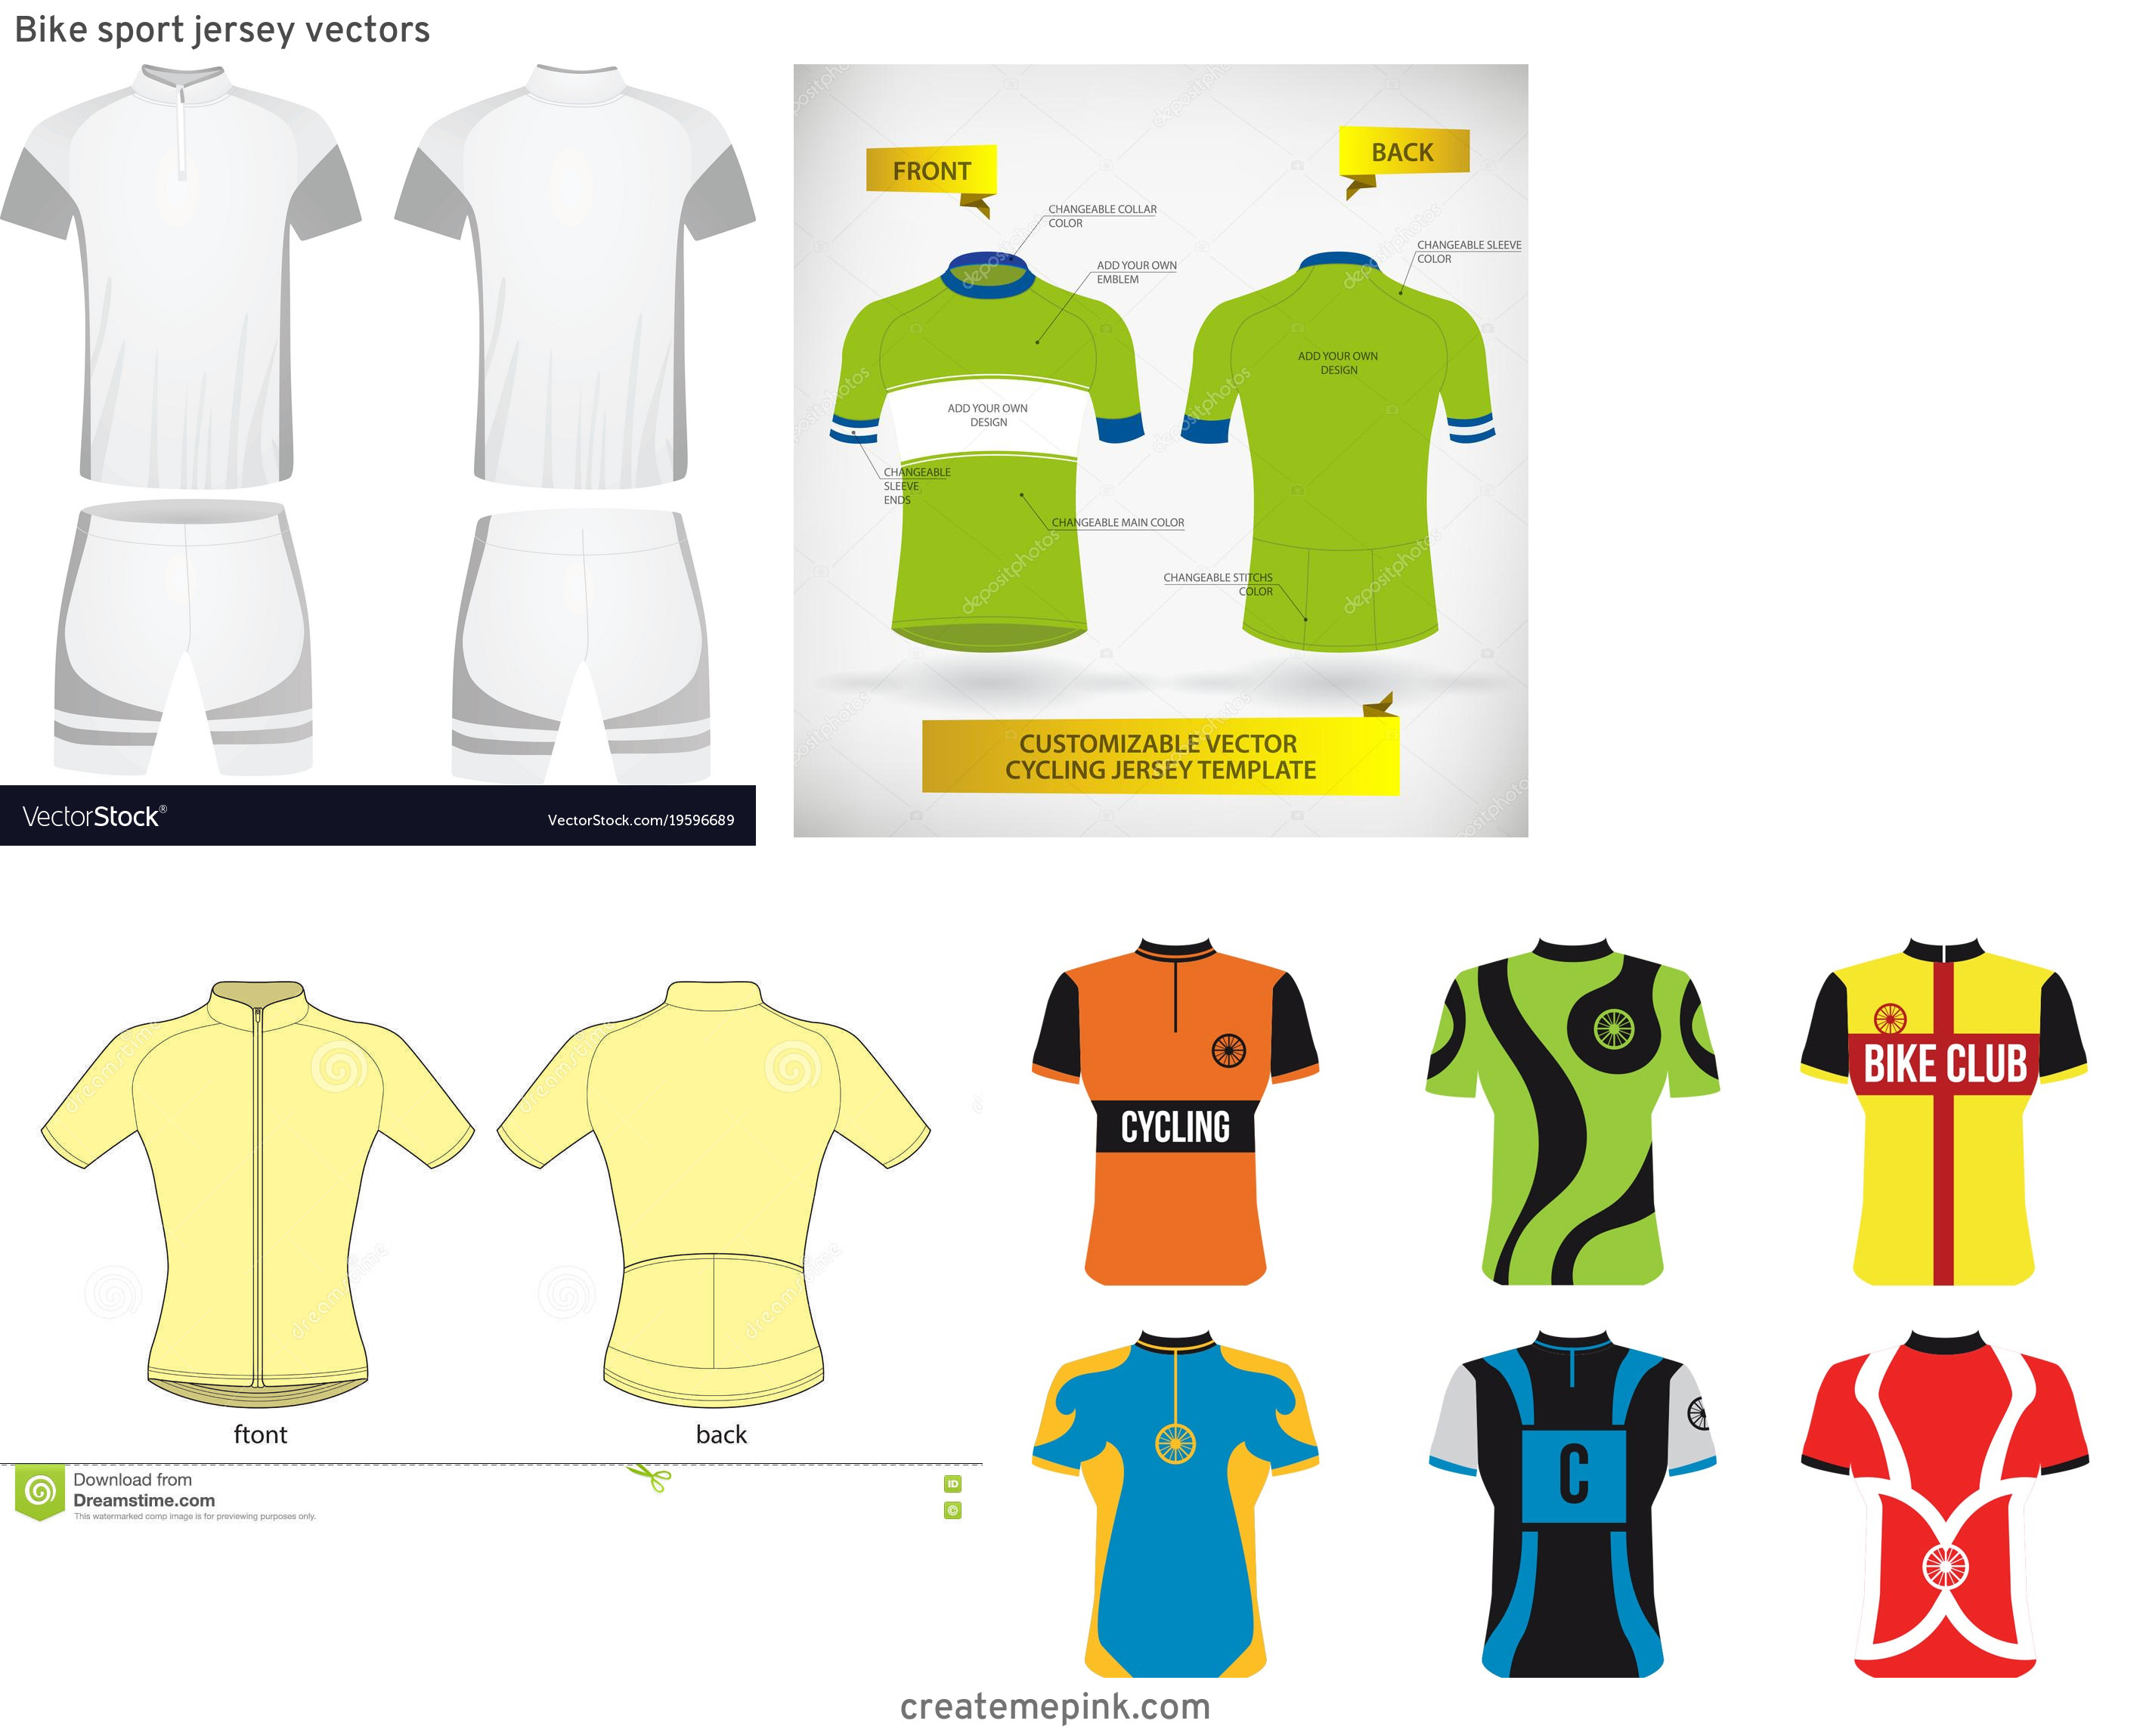 Cycling Kit Template Vector: Bike Sport Jersey Vectors